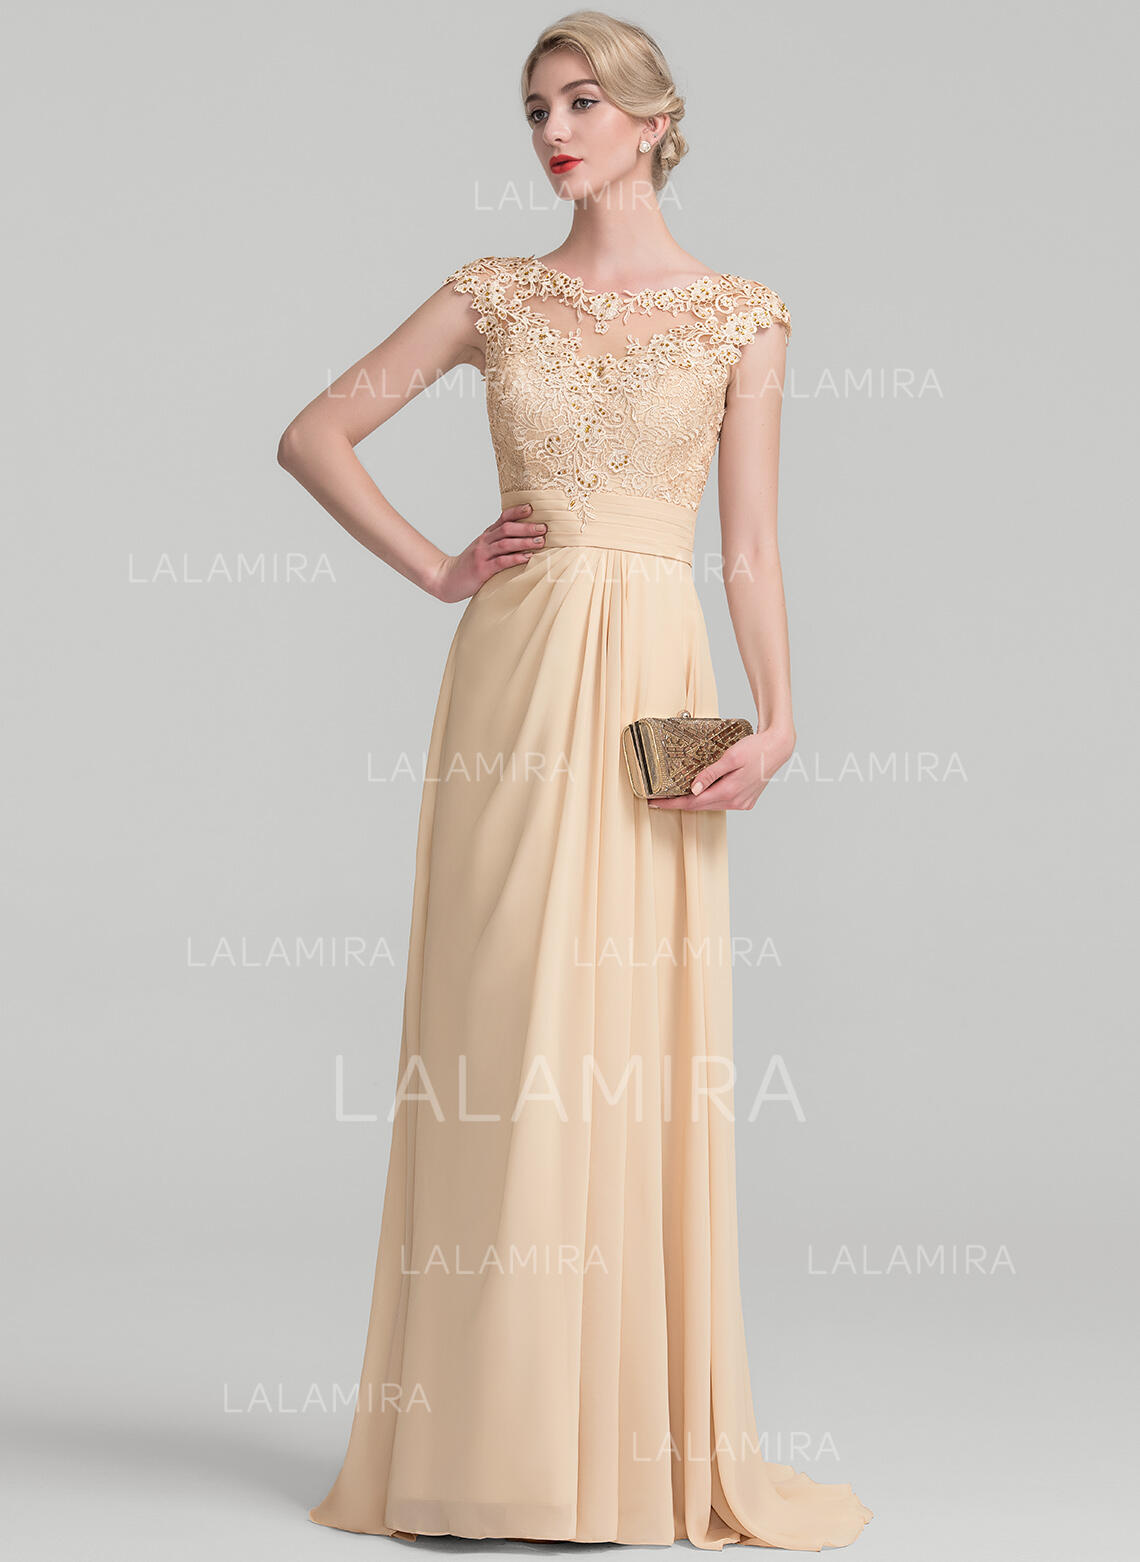 752a483c121 A-Line Princess Scoop Neck Sweep Train Chiffon Lace Mother of the Bride  Dress. Loading zoom